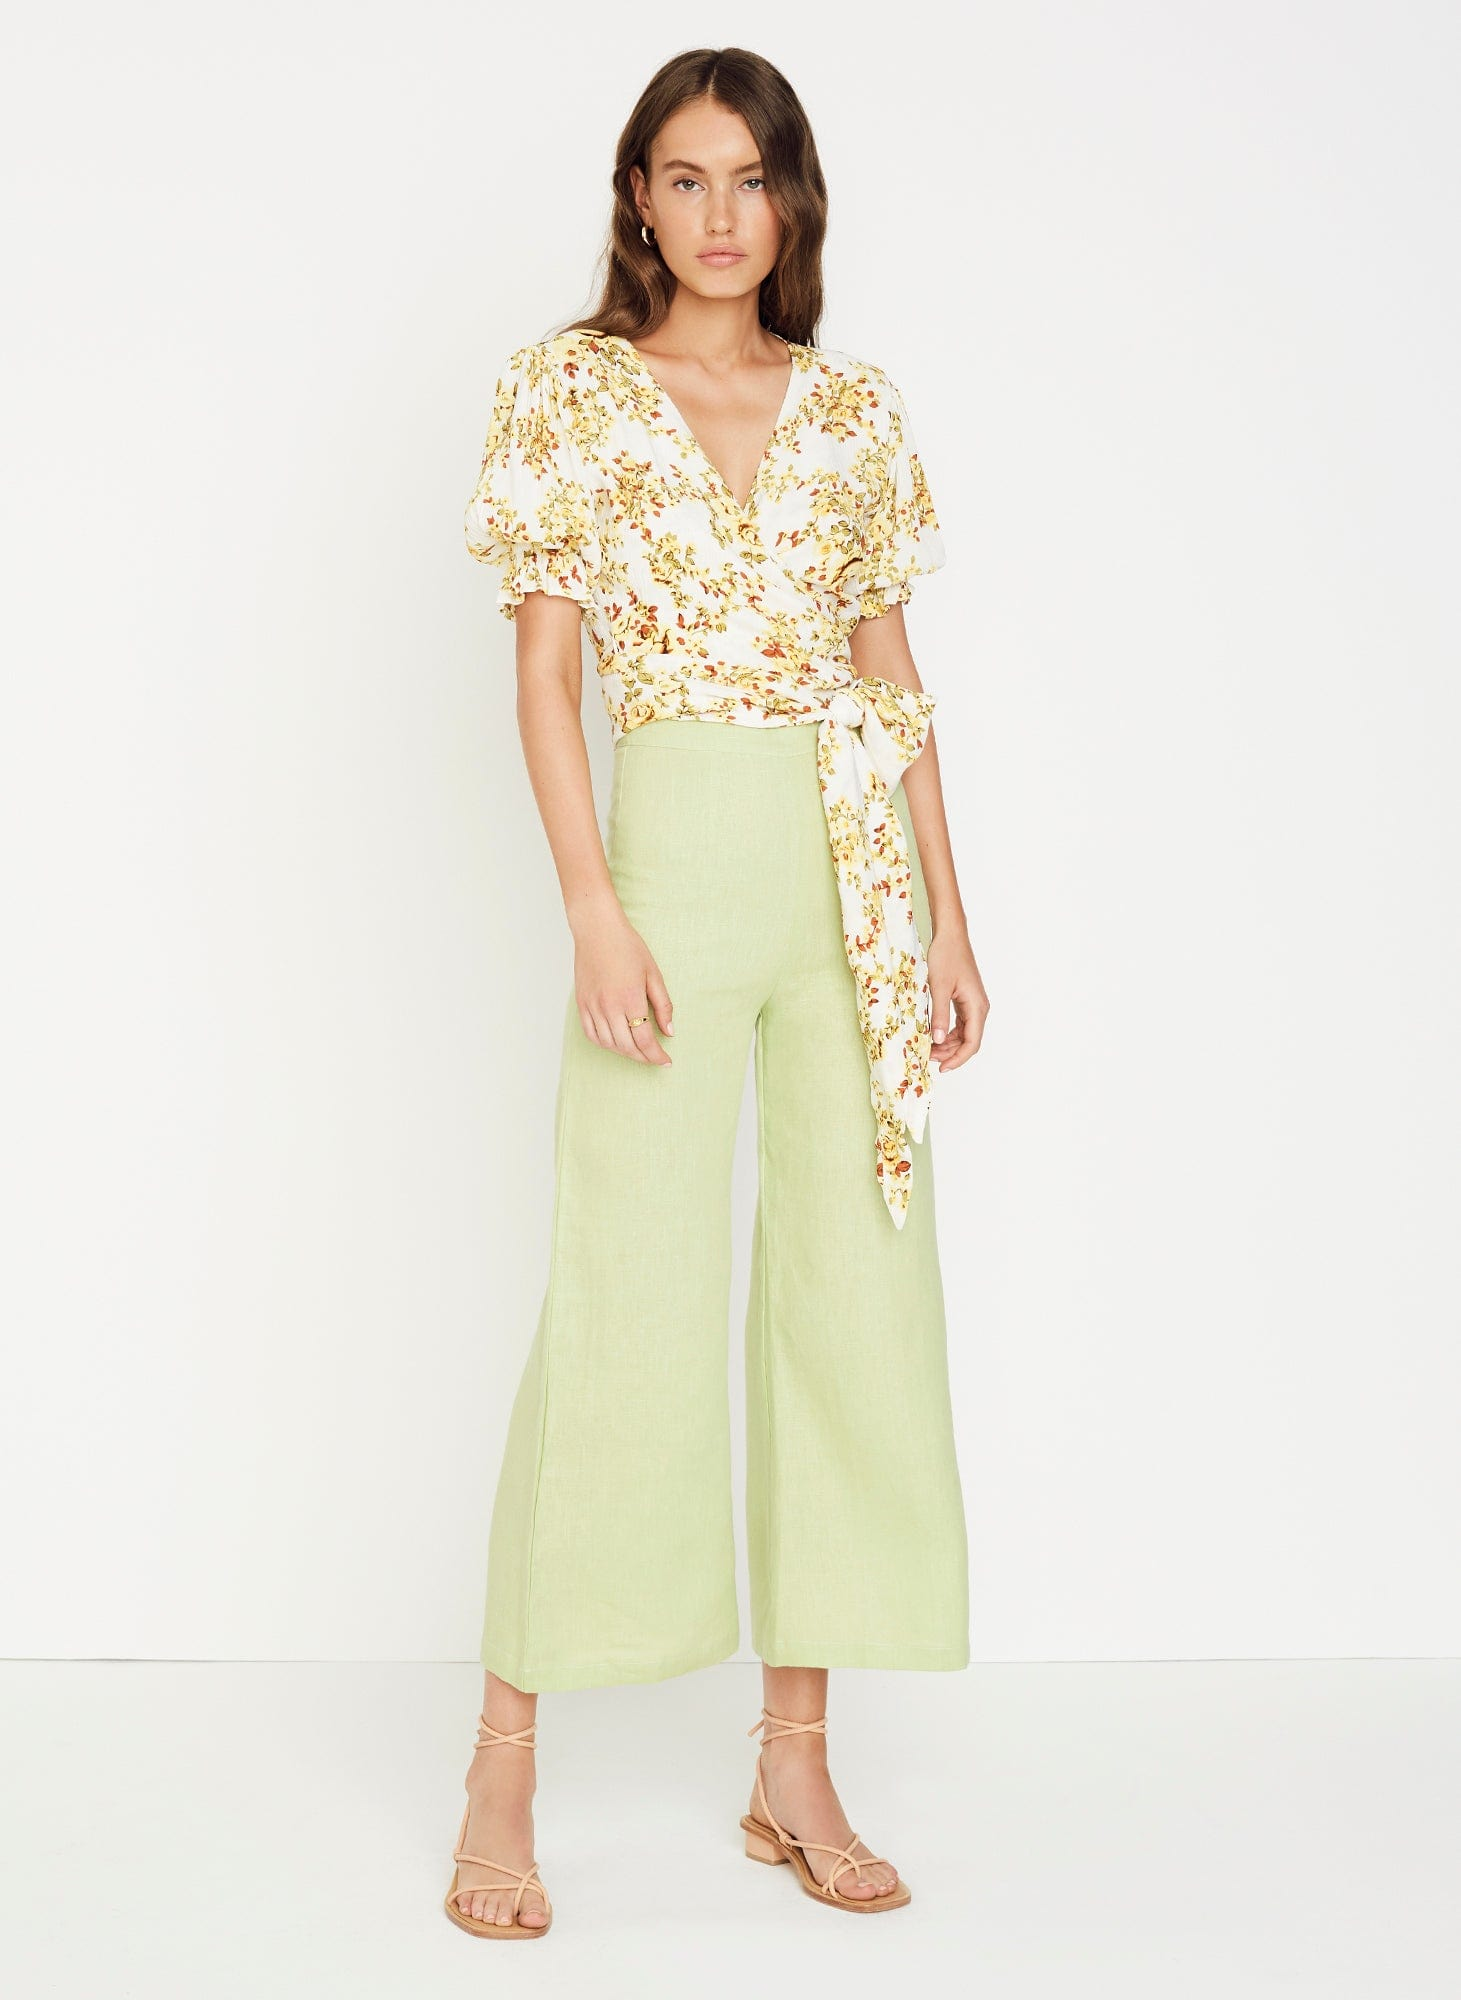 GOLDIE FLORAL - OFF WHITE - MALI WRAP TOP